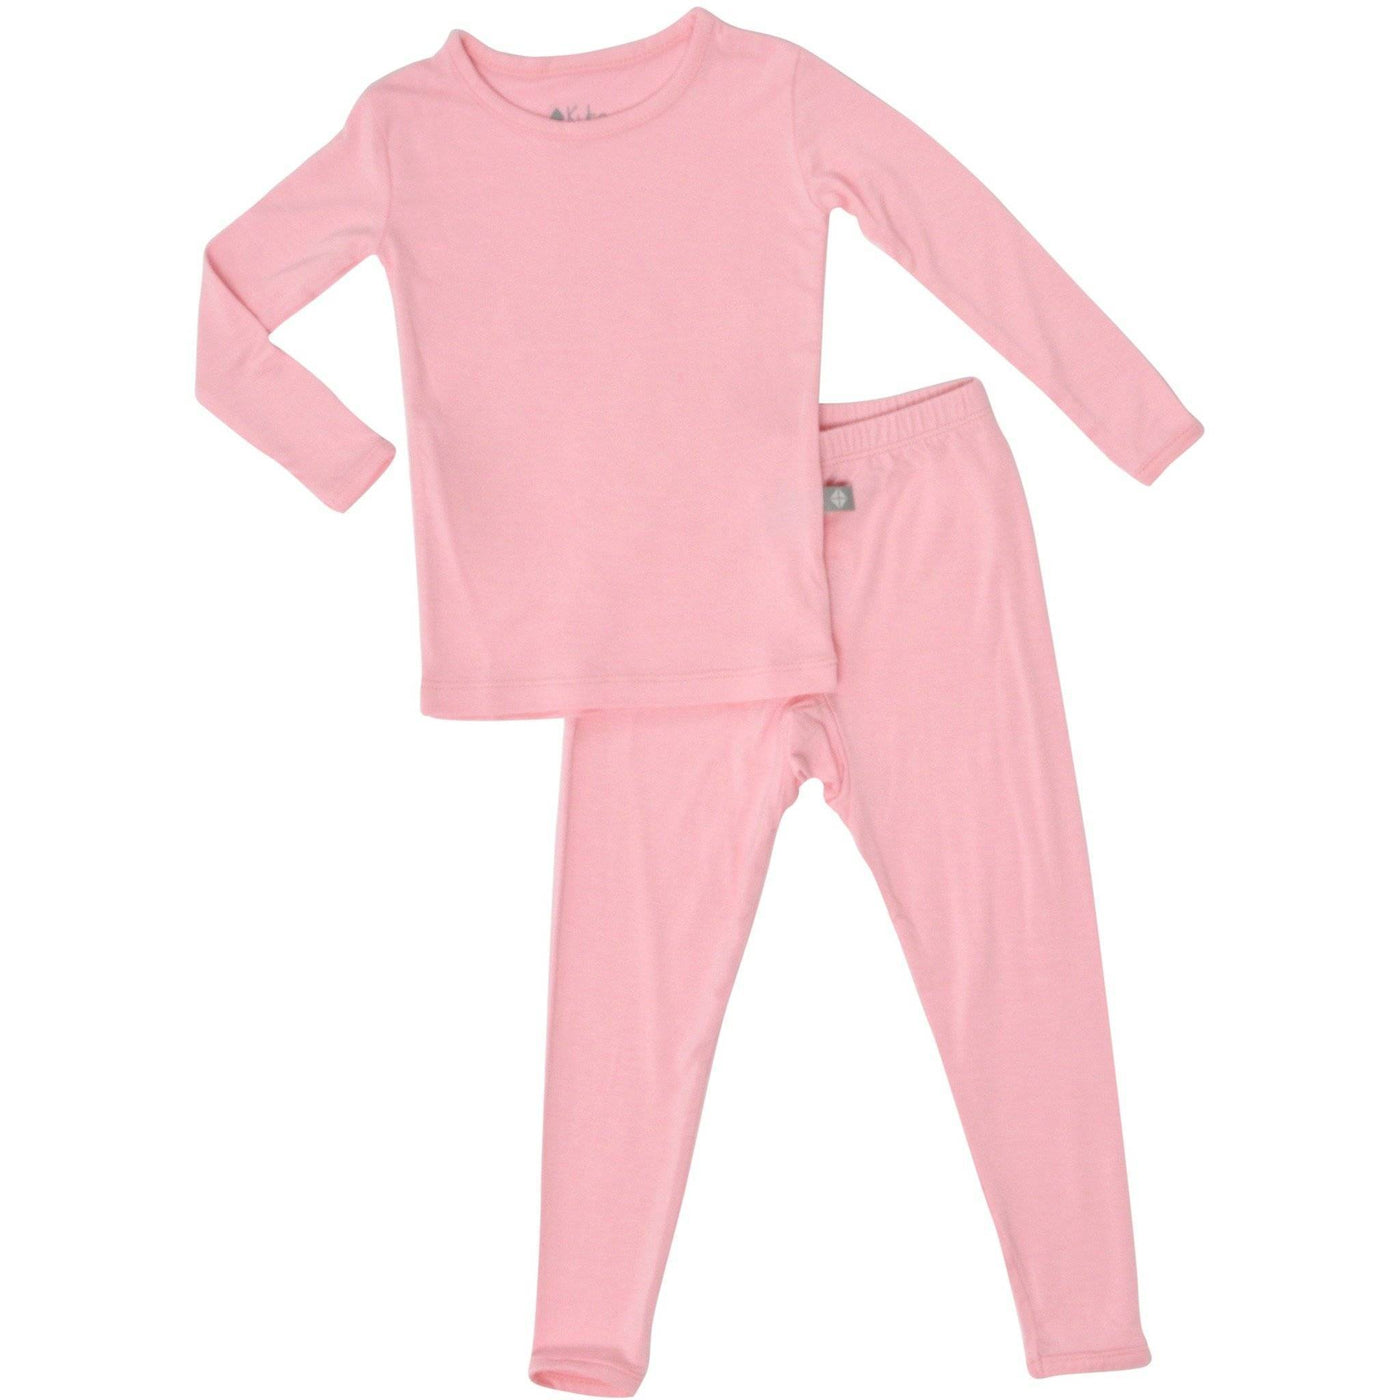 Kyte BABY Toddler Pajama Petal / 2T Toddler Pajama Set in Petal